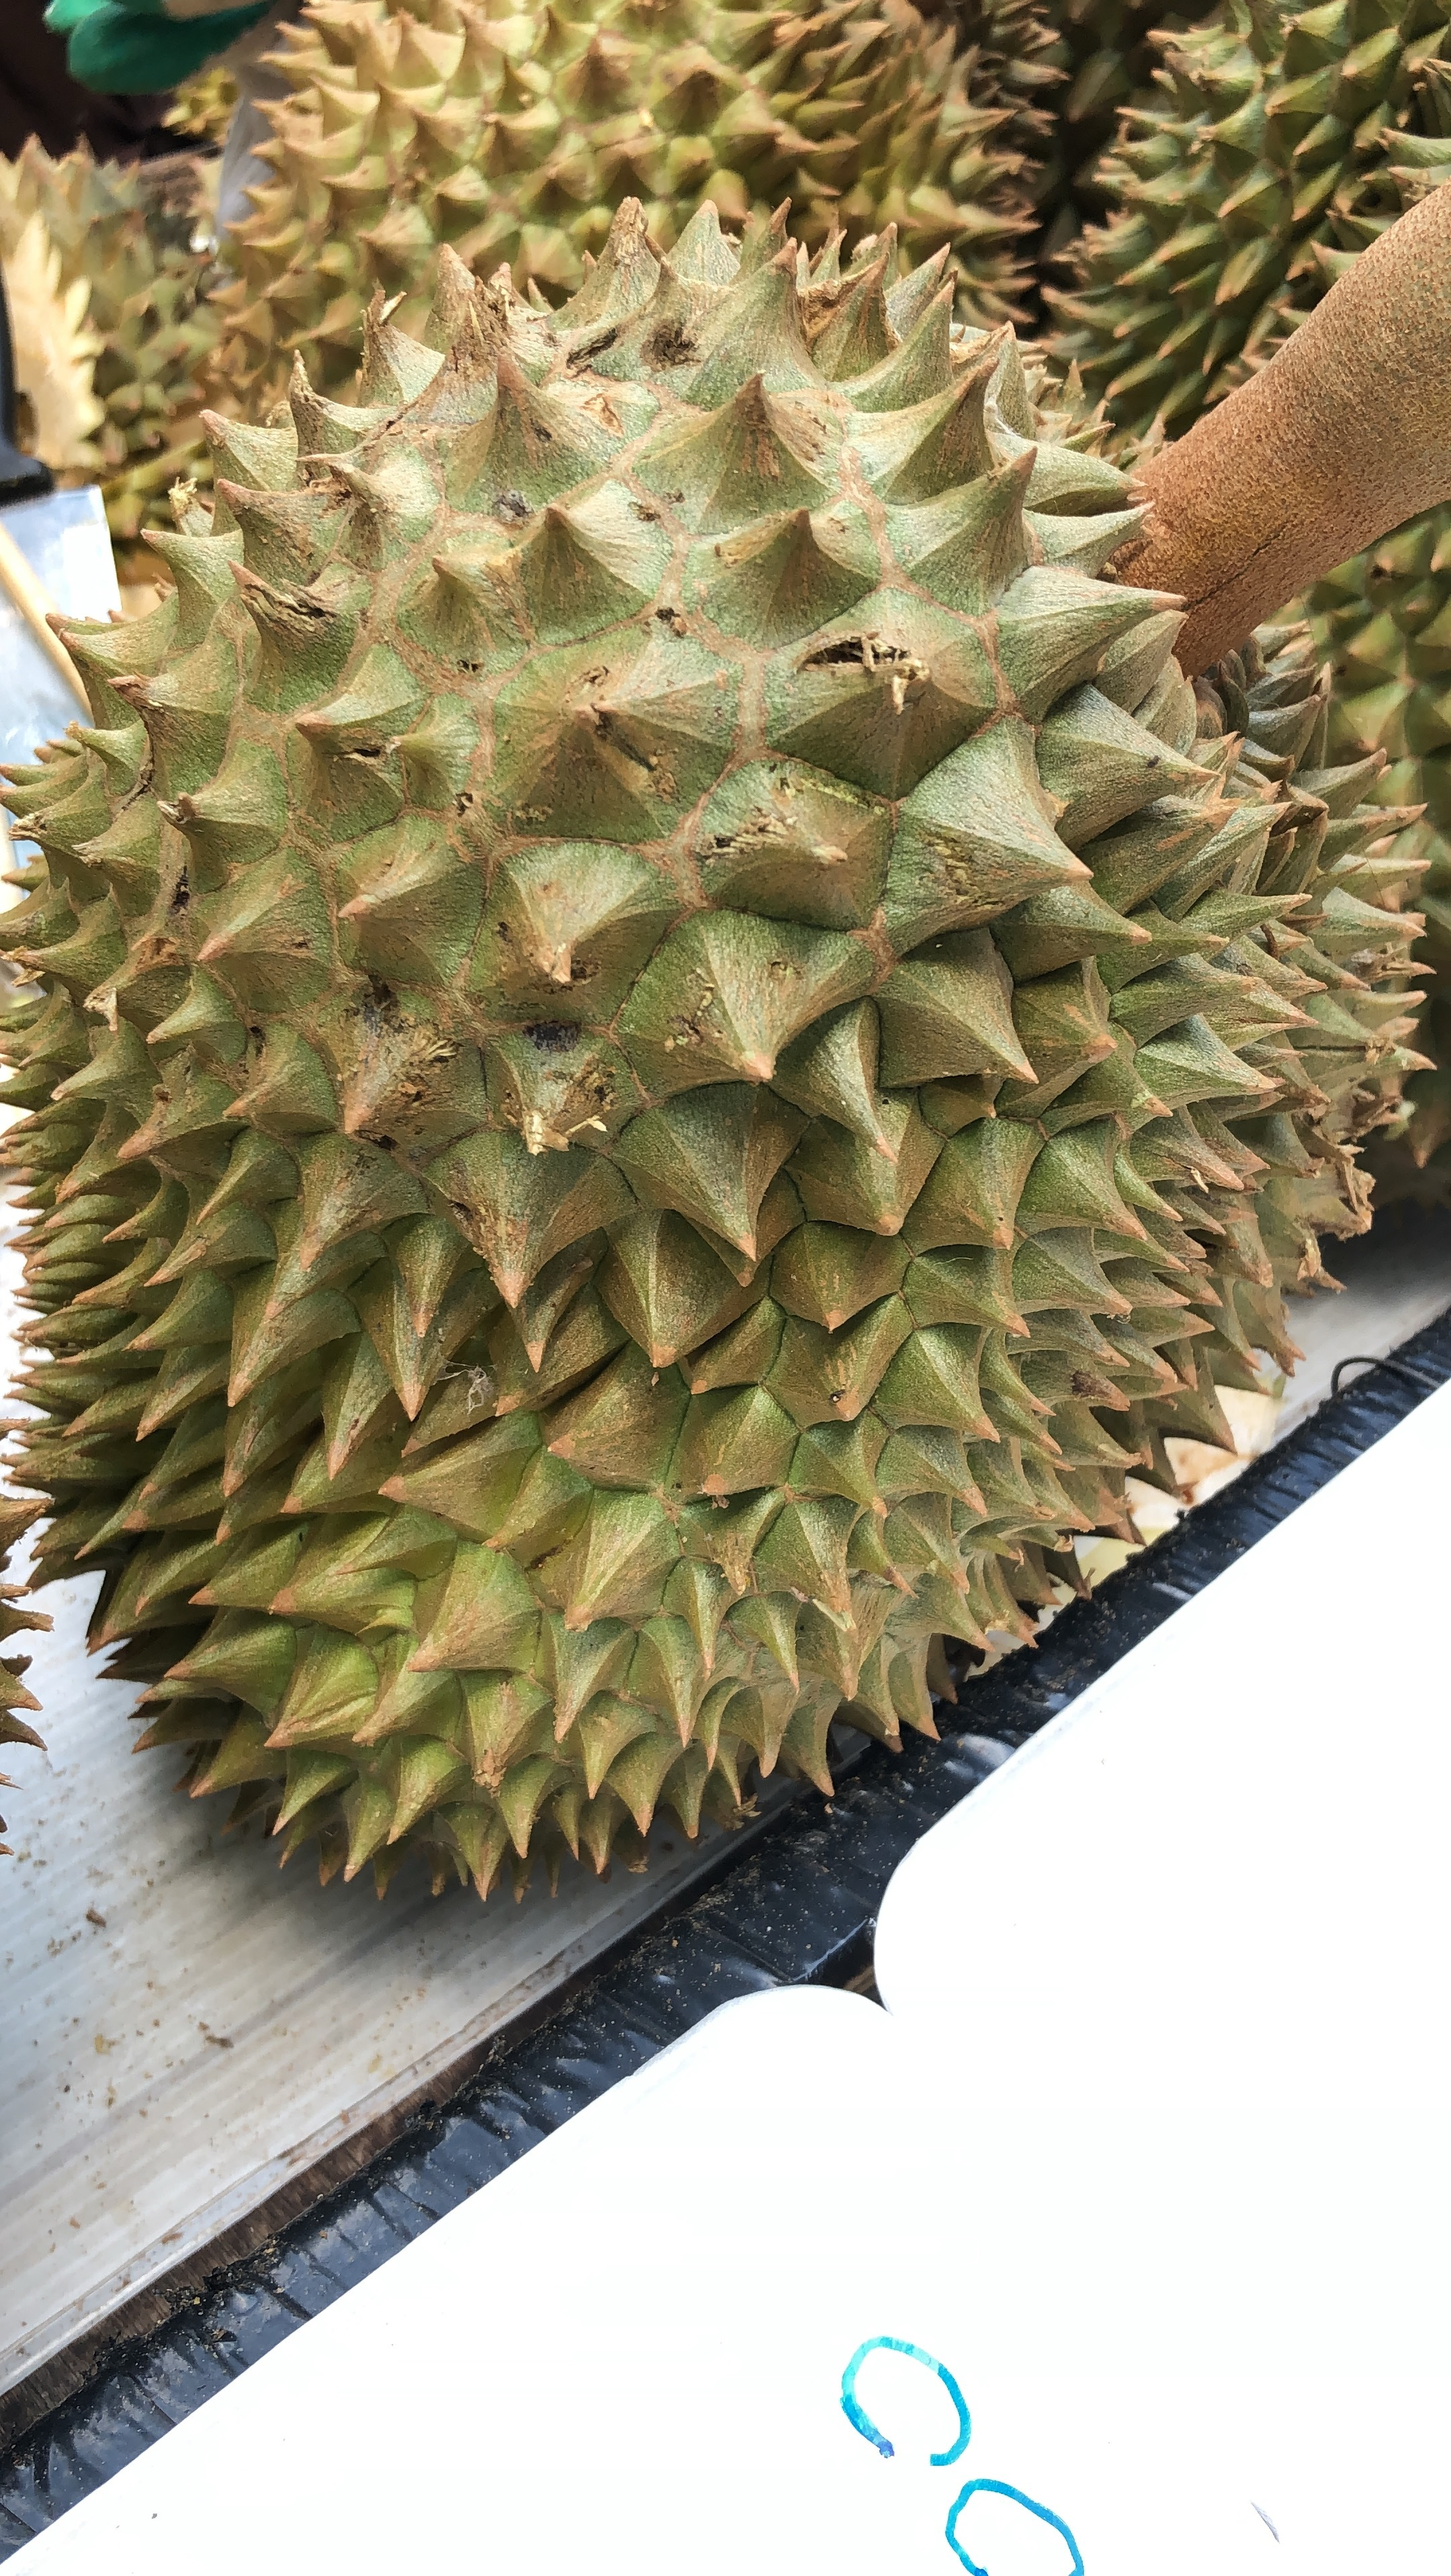 Durian fruit at Chatuchak Weekend Market